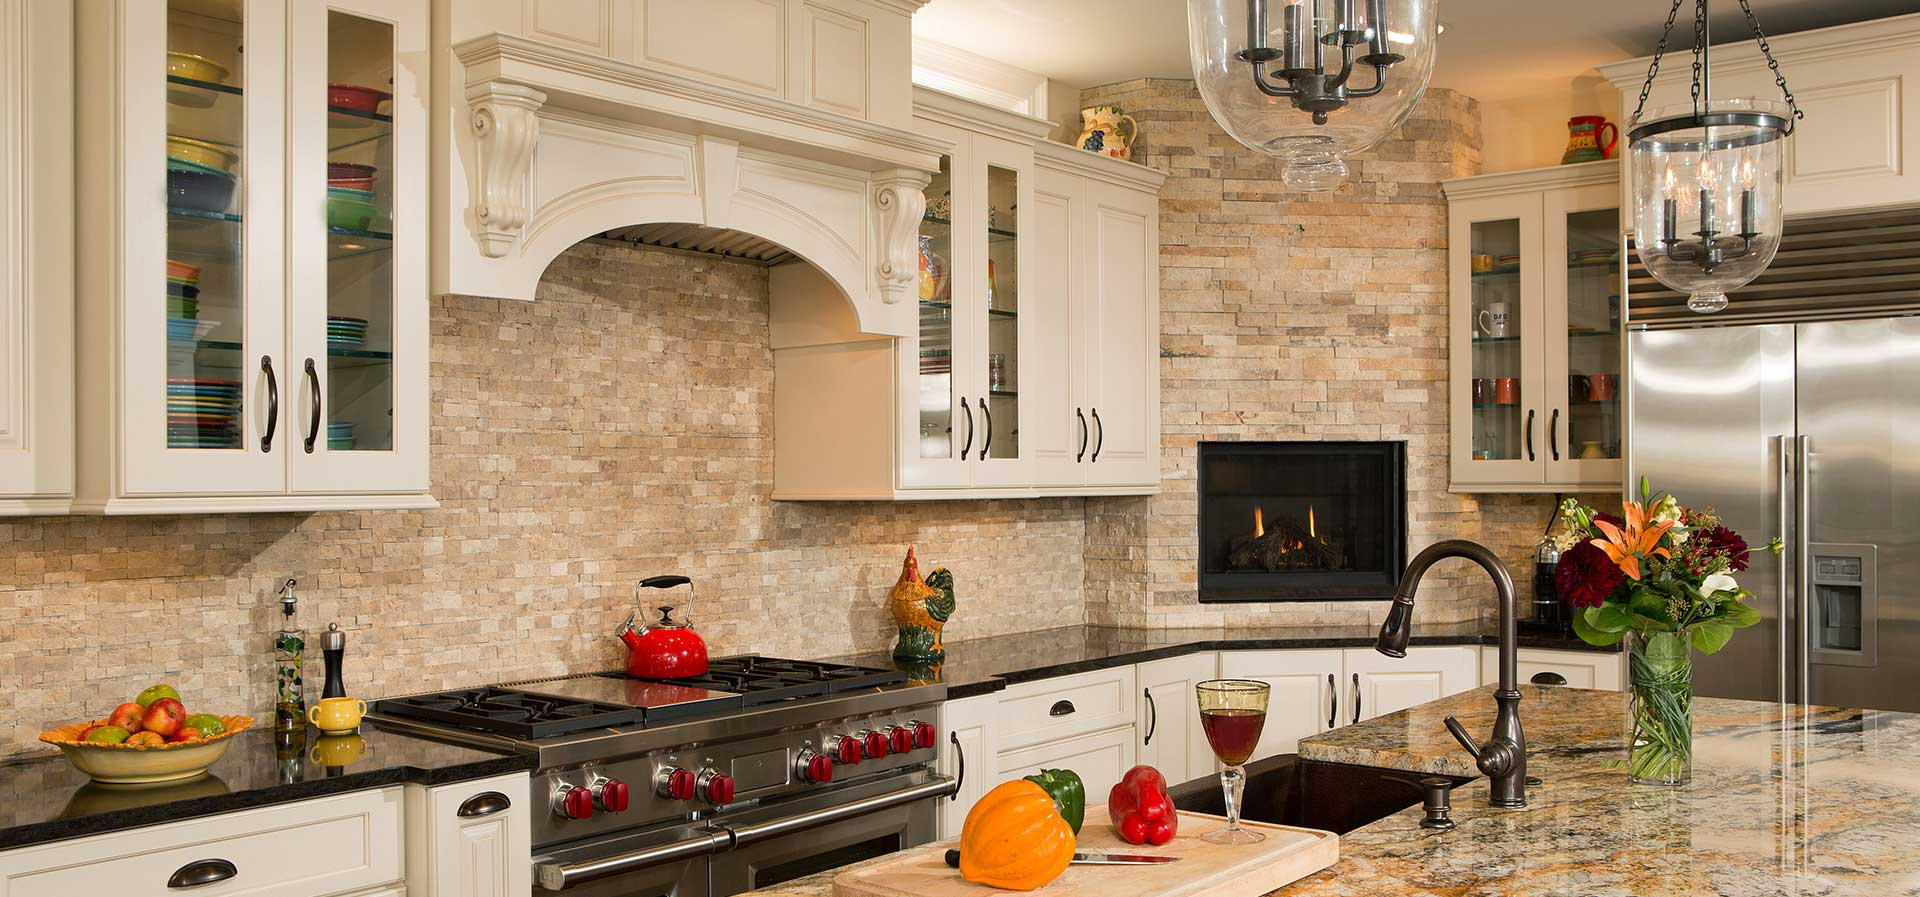 sundesigninc kitchen remodeling northern virginia